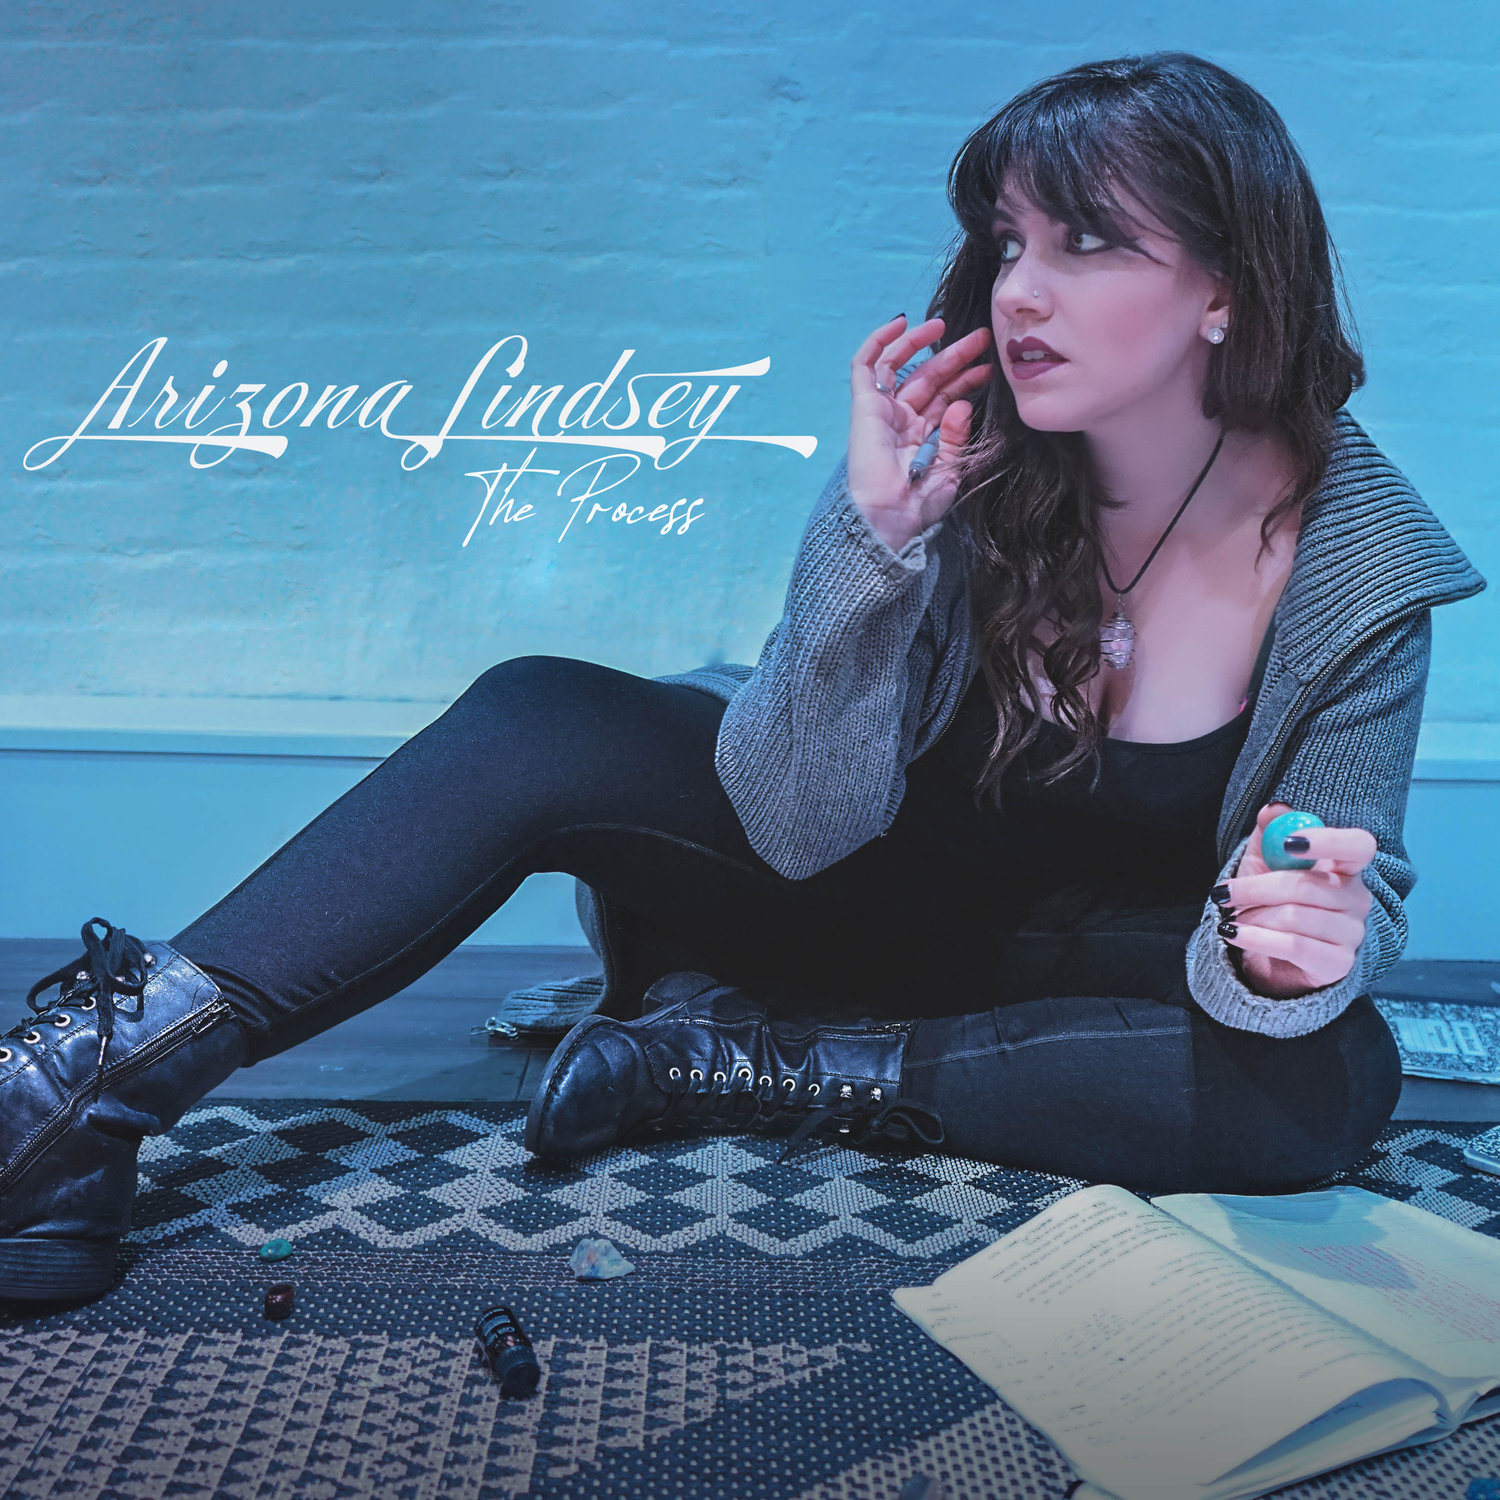 "Country pop singer Arizona Lindsey had her tour cut short because of the pandemic, which led to her spending more time in the studio and completing her second album, ""The Process,"" which is out April 9."